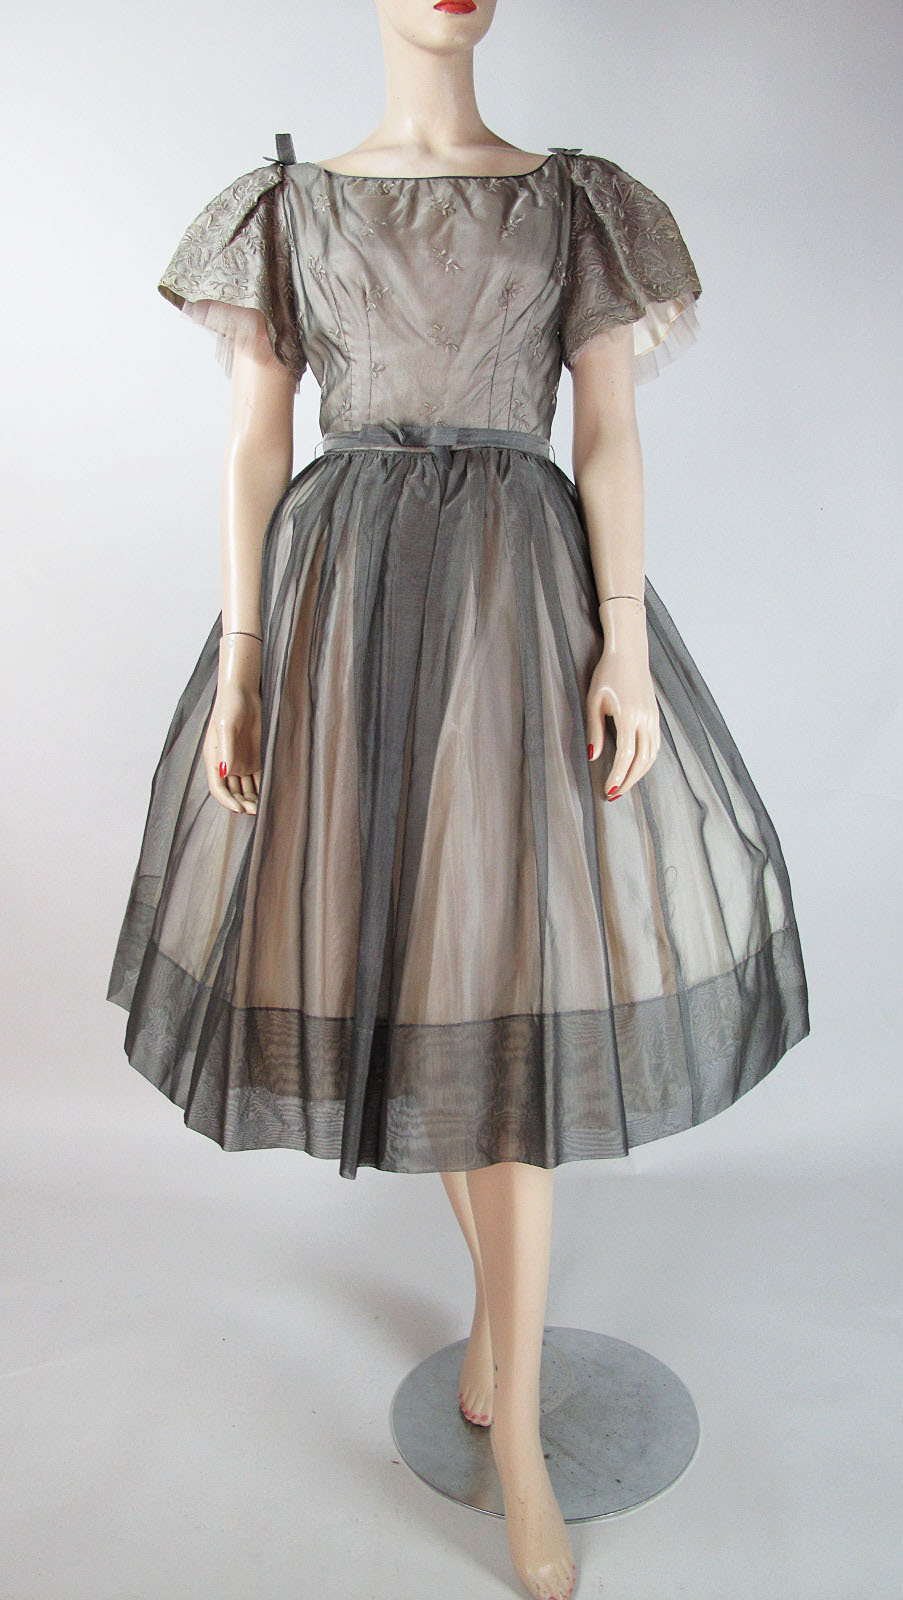 1950 S Vintage Embroidered Silver Organdy Party Dress Sold